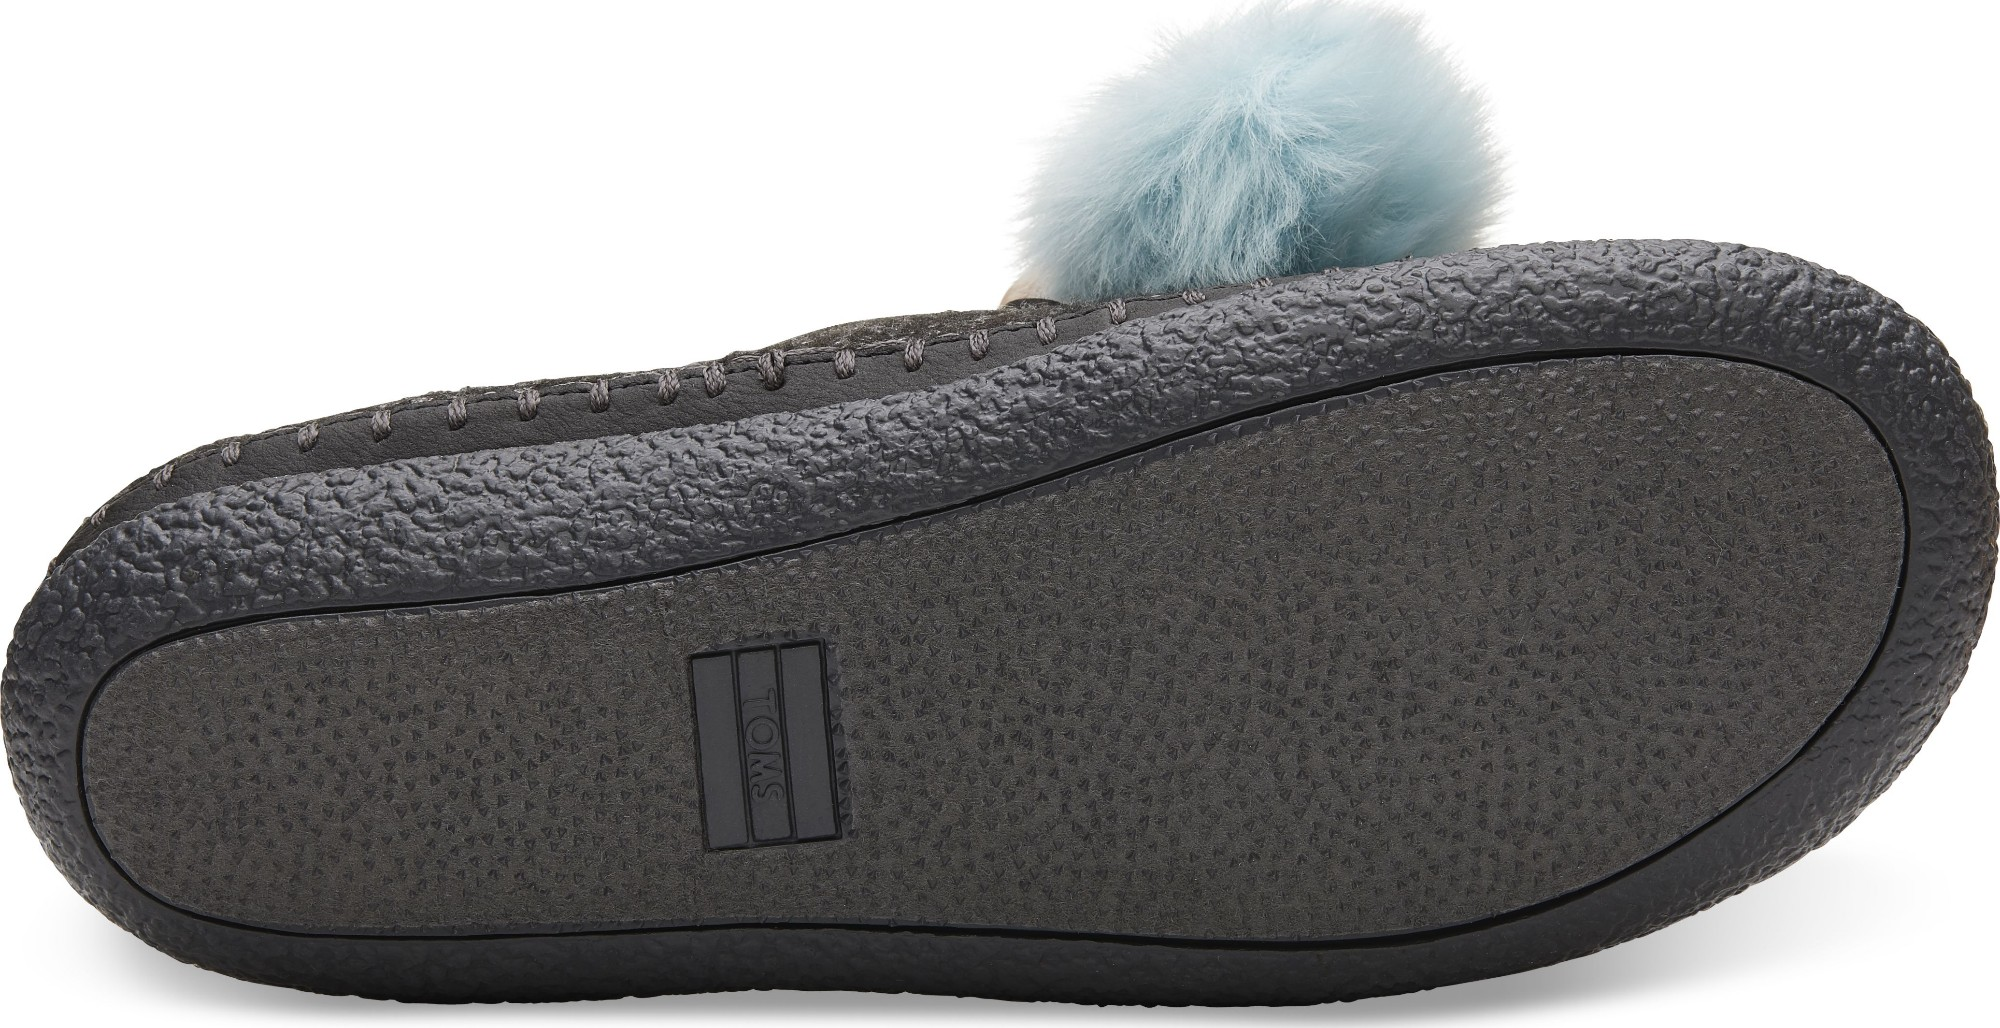 e54943674df Previous. TOMS Felt Pom Pom Women s Ivy Slipper Black ...